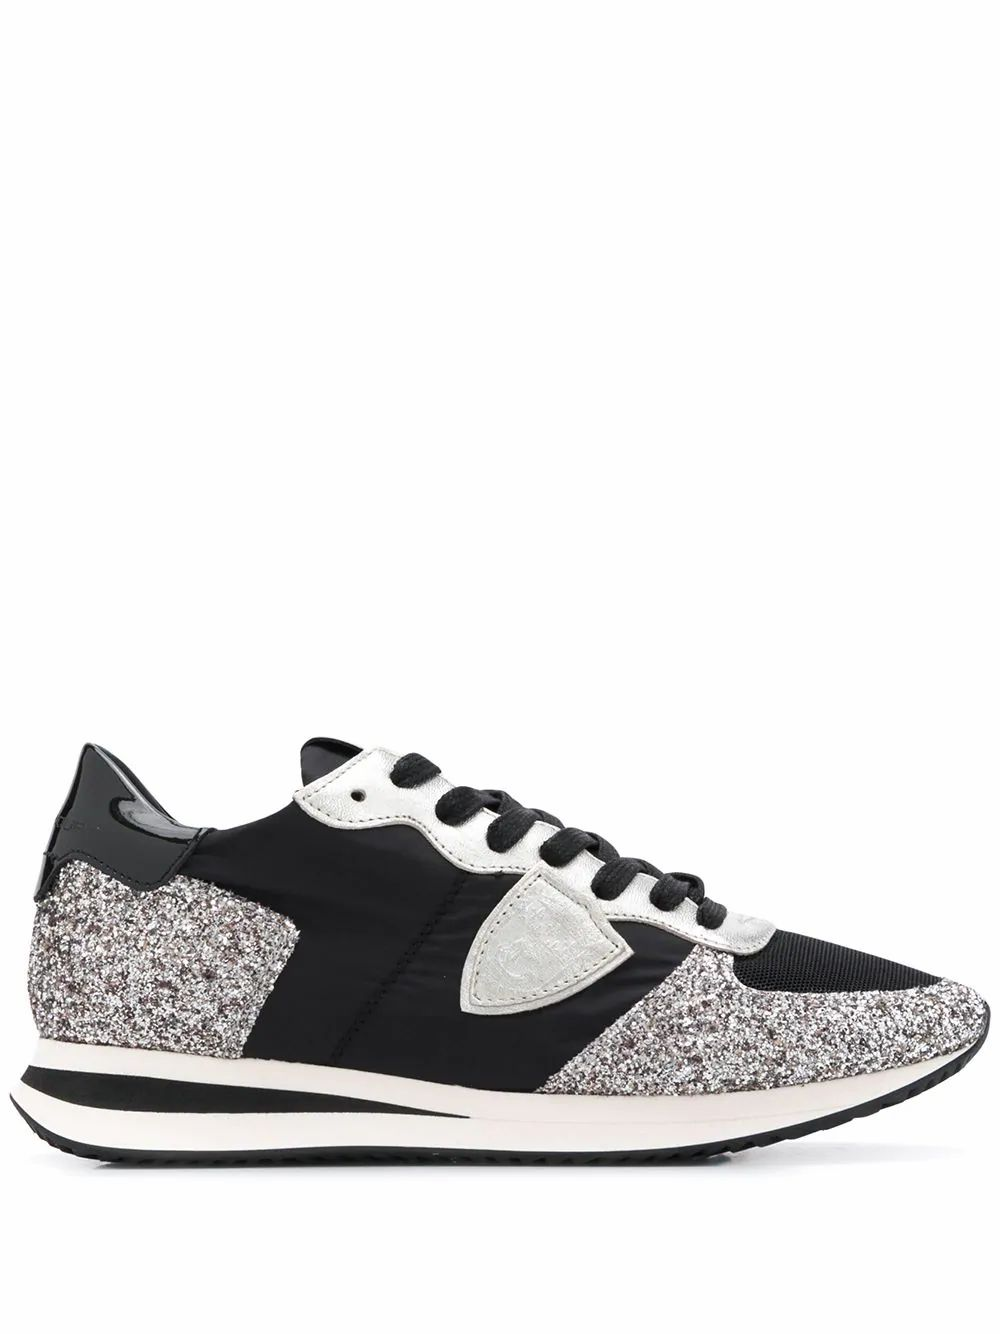 Philippe Model PHILIPPE MODEL WOMEN'S TZLD2100 BLACK LEATHER SNEAKERS